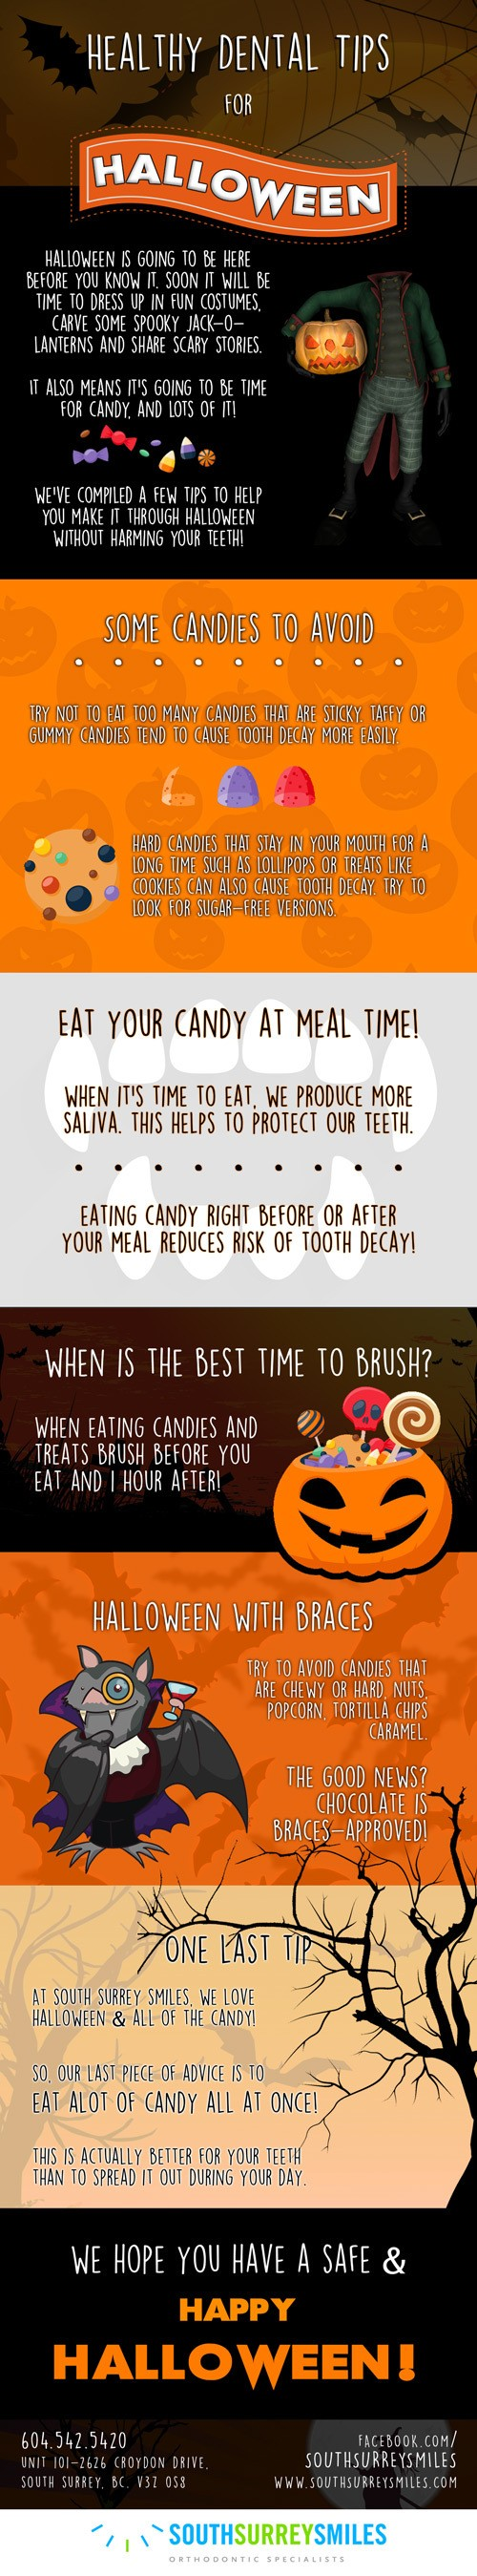 south surrey smiles halloween dental infographic